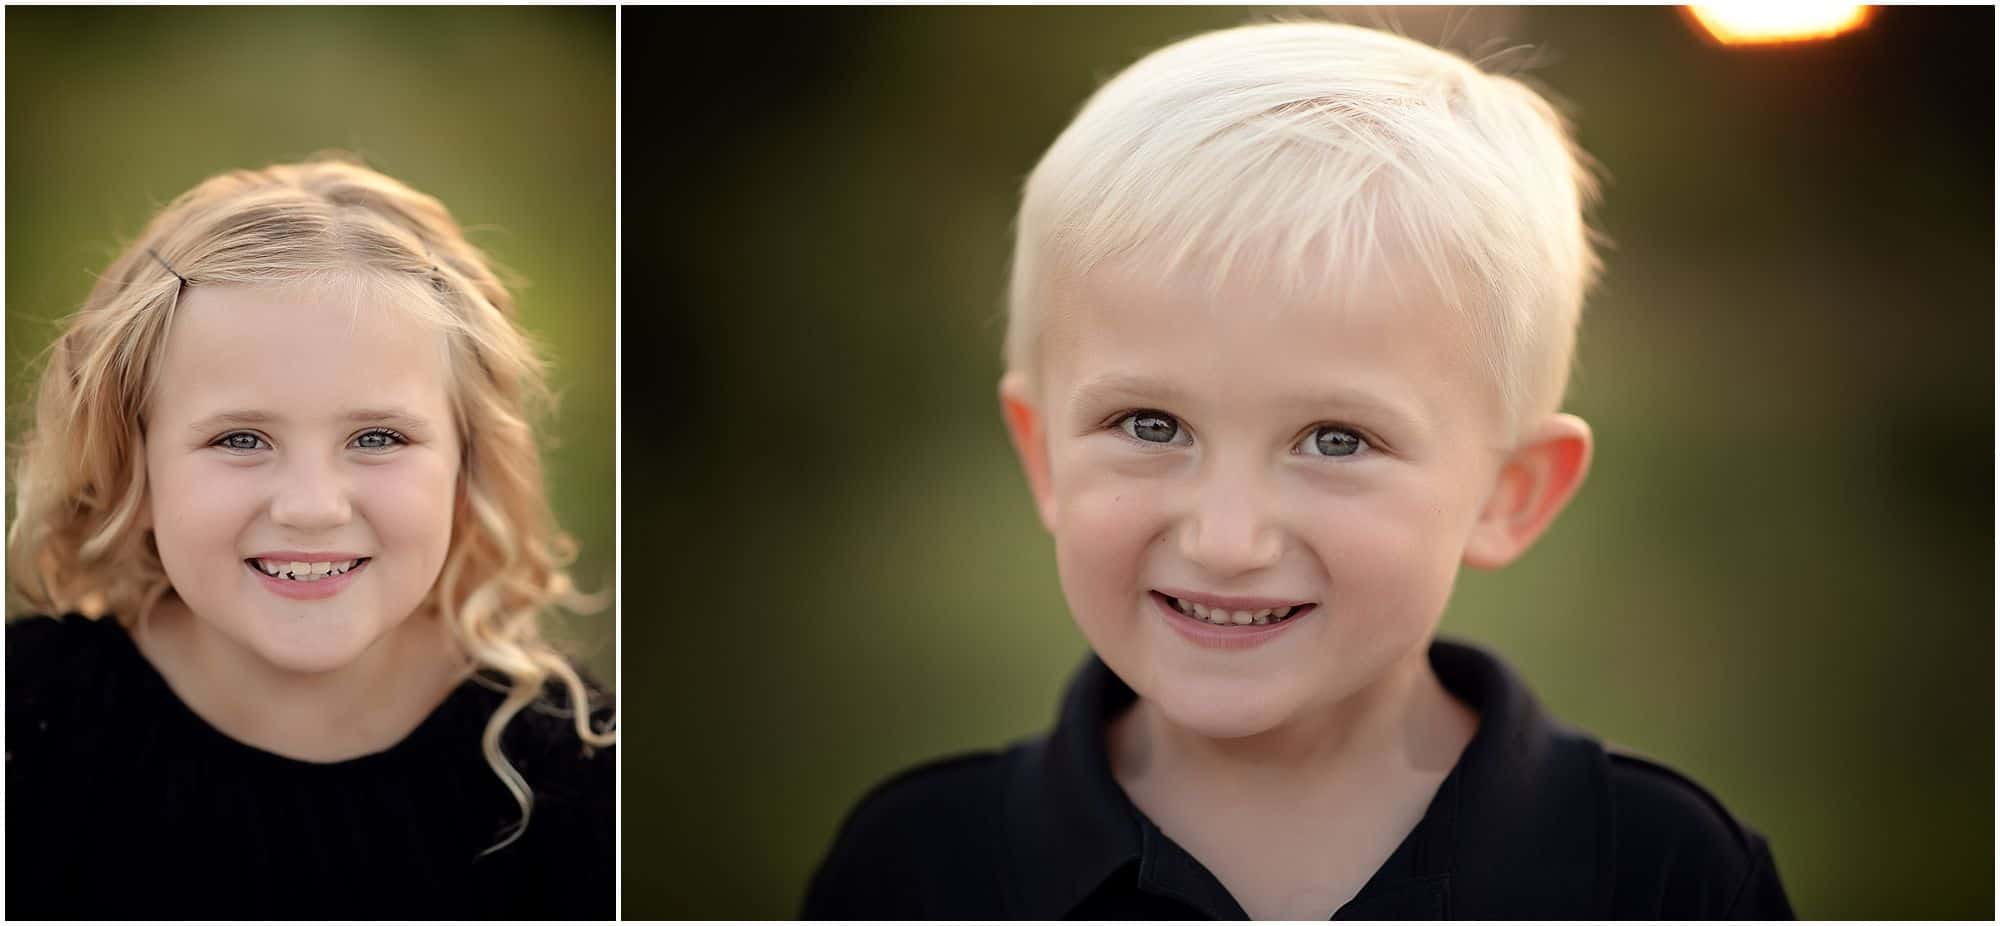 Brother & sister at cincinnati family photographer session with Samantha sinchek photography in cincinnati ohio